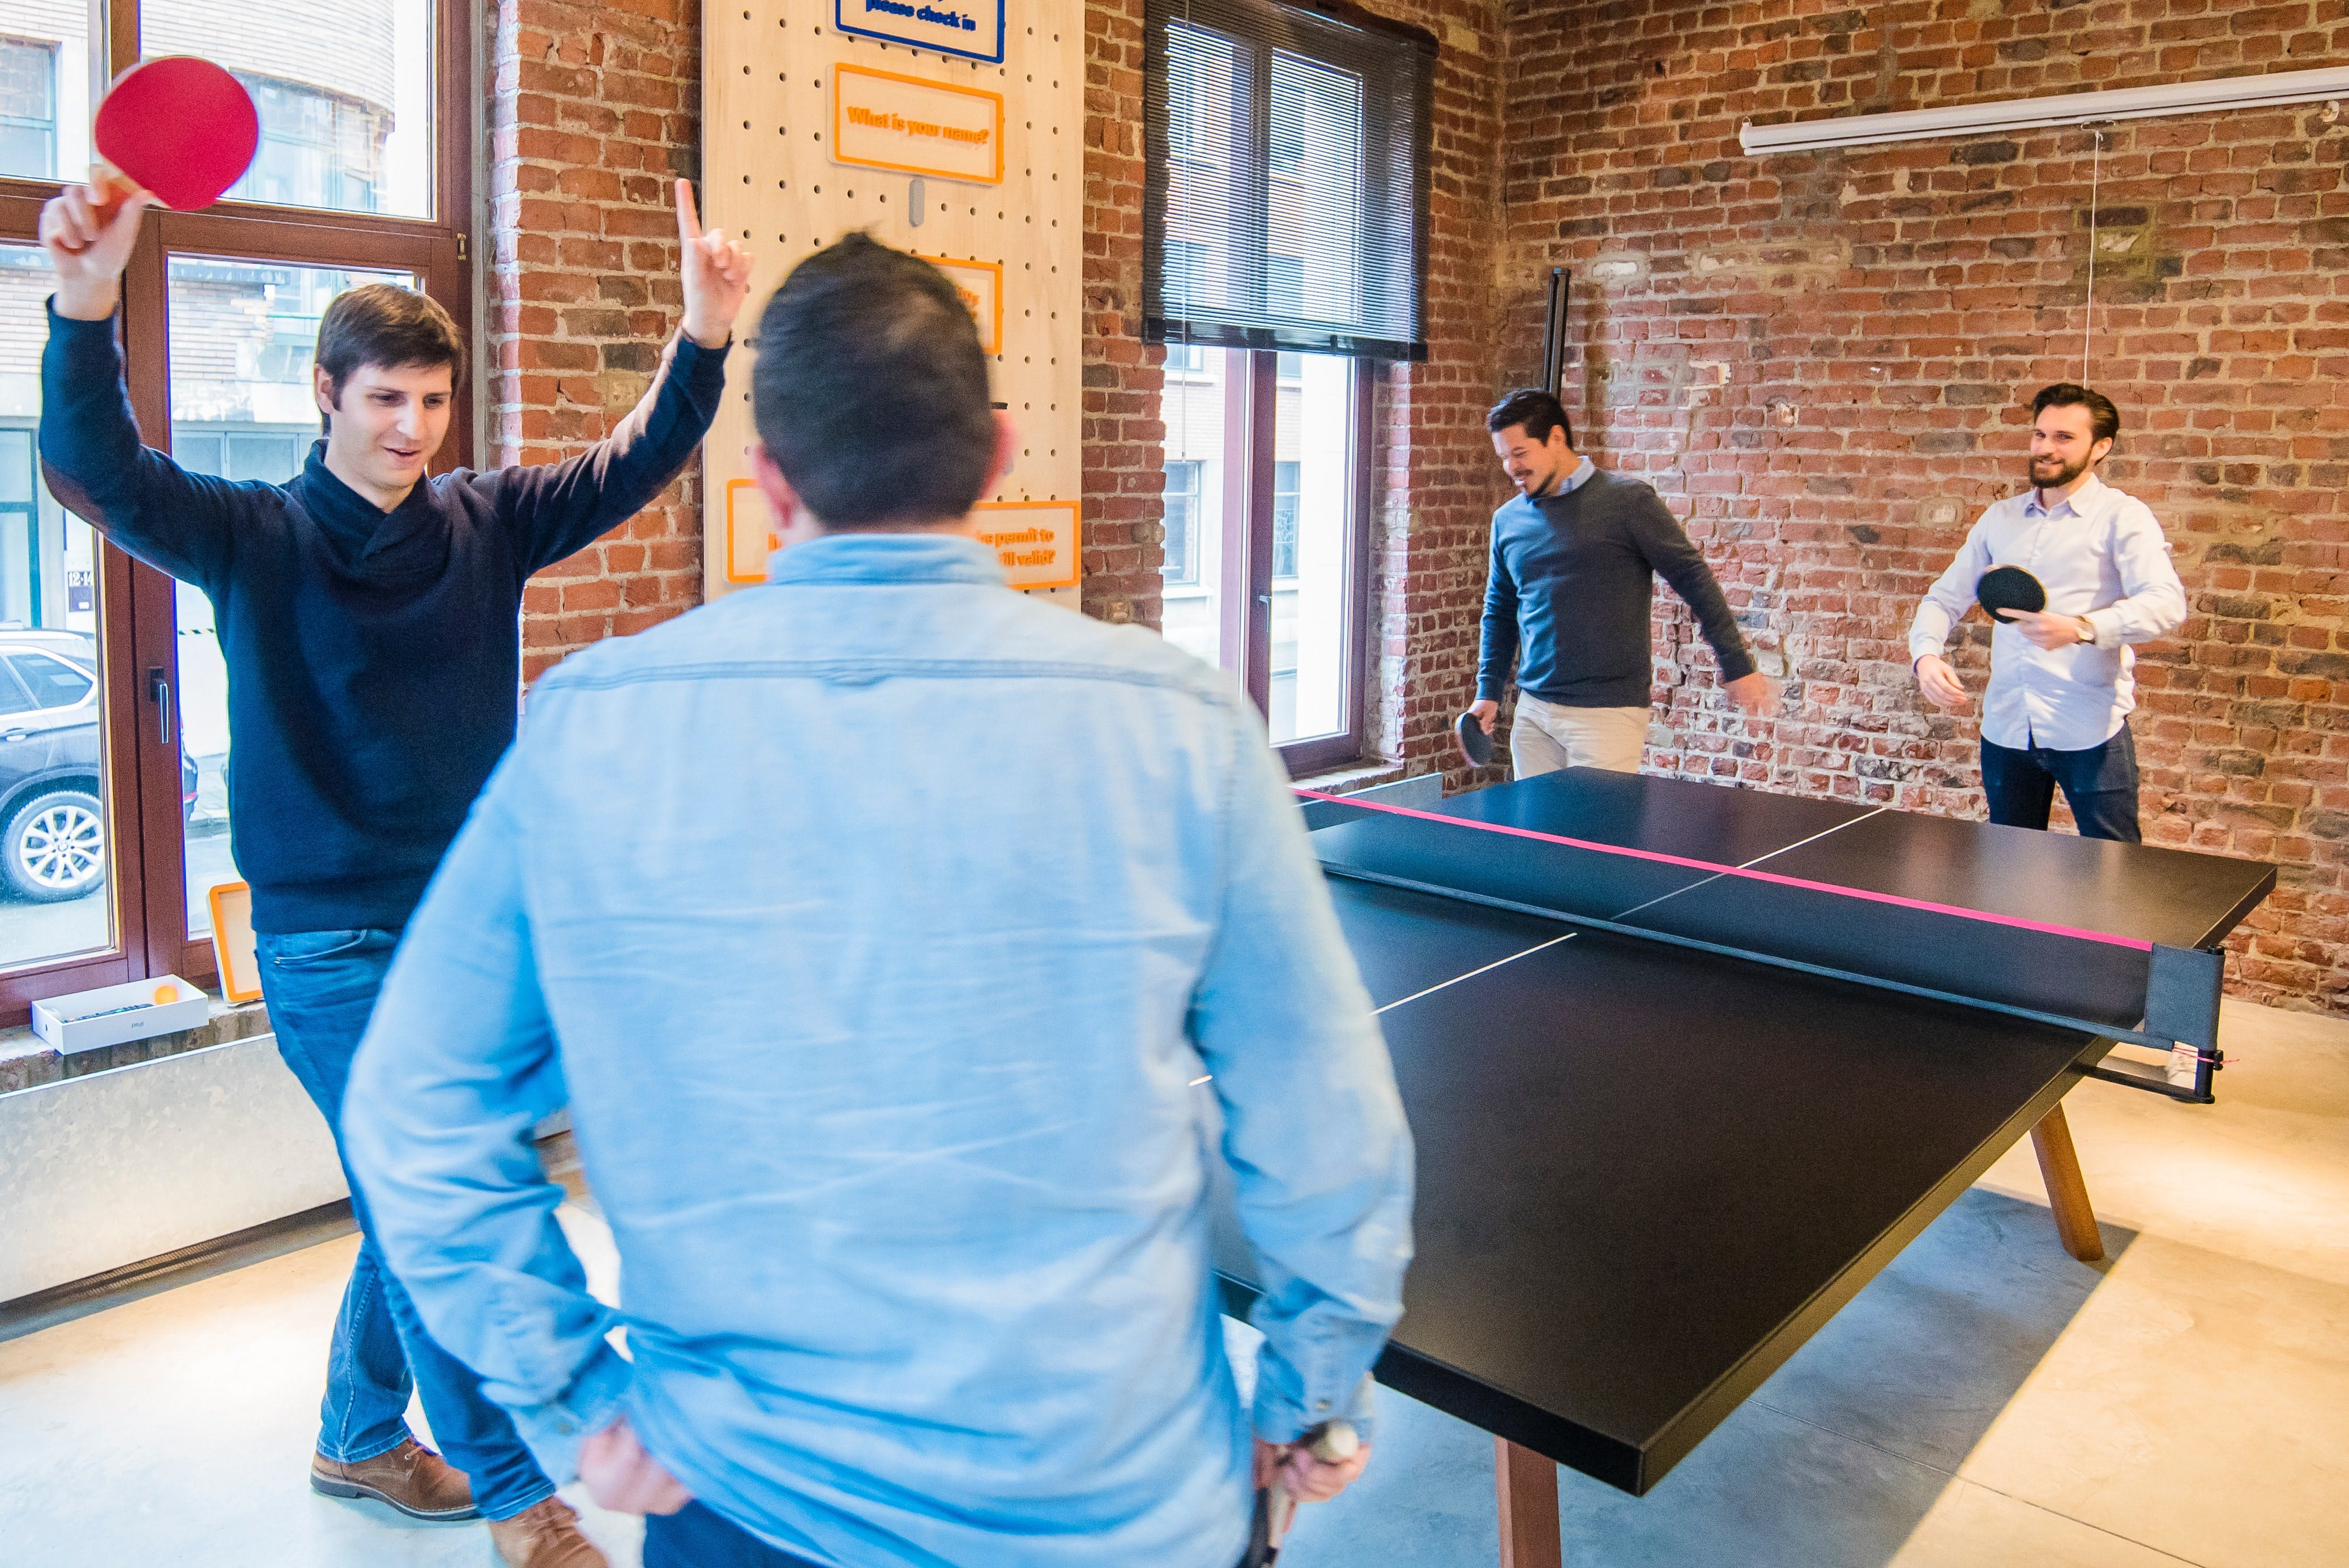 A group of four men playing ping pong in an office during a break. This is the type of in-office experience that can positively contribute to the employee brand.